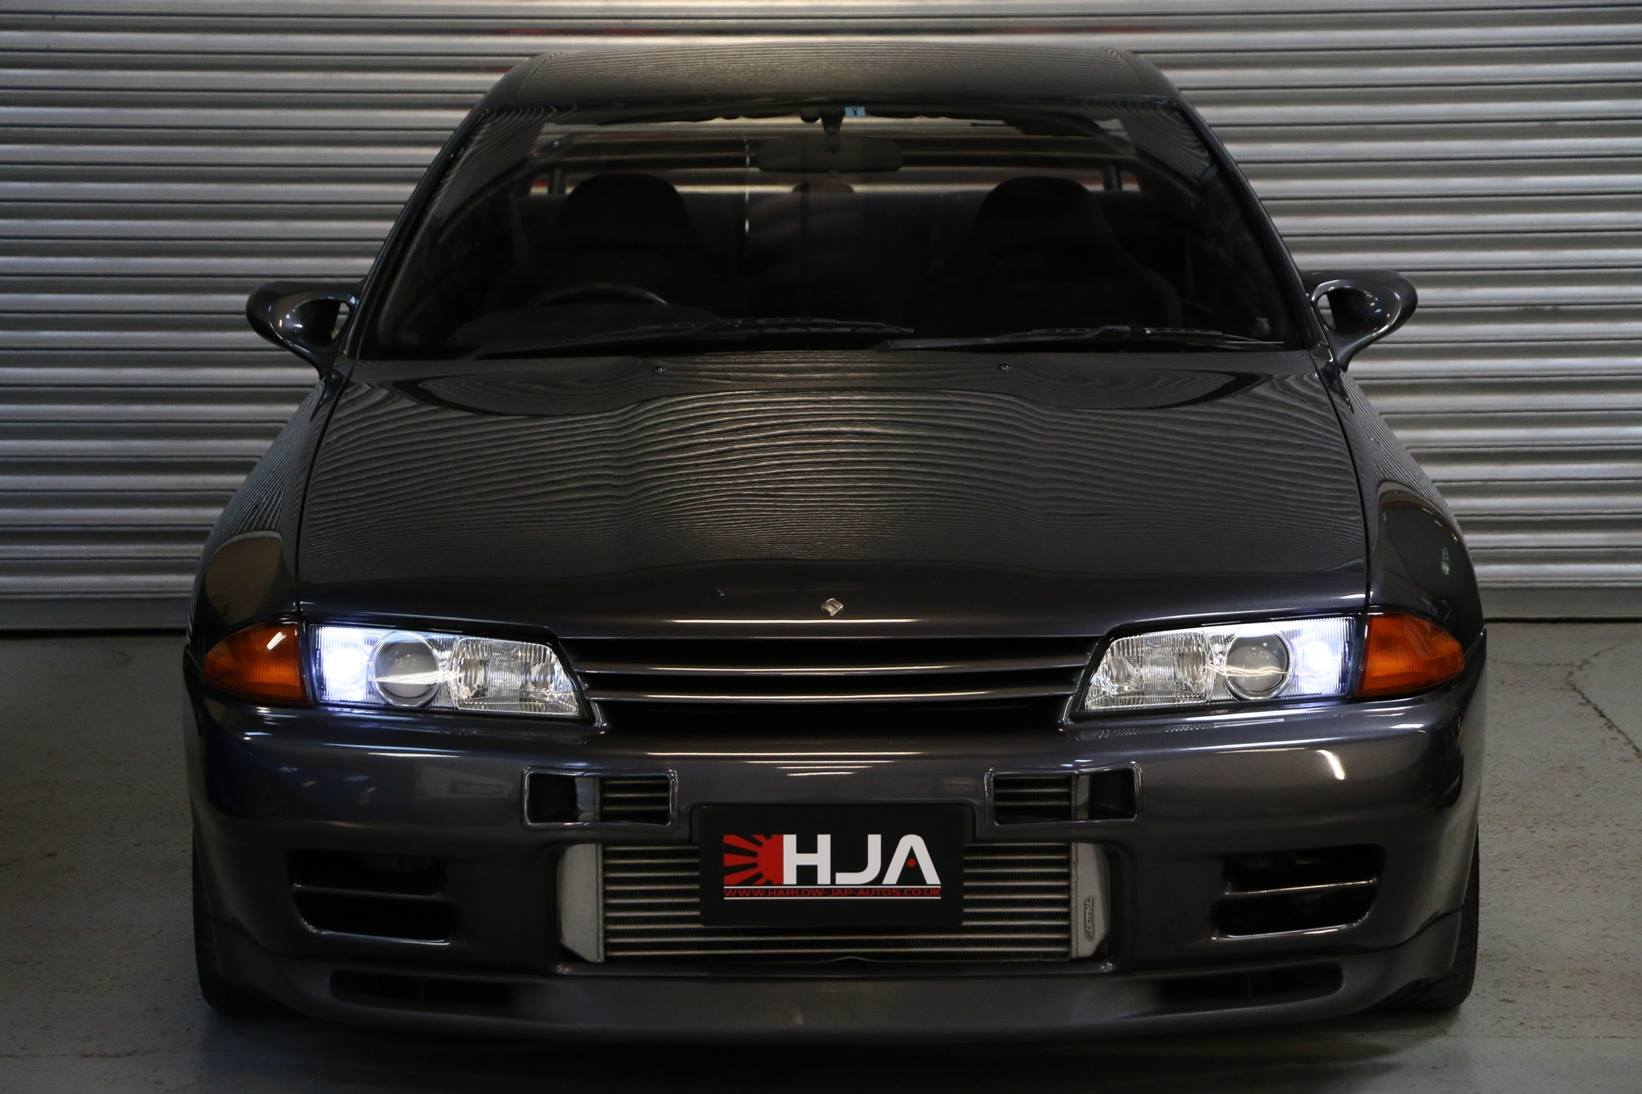 Nissan Build And Price >> Nissan Skyline R32 GT-R Tuned by Jun :: High Import ...